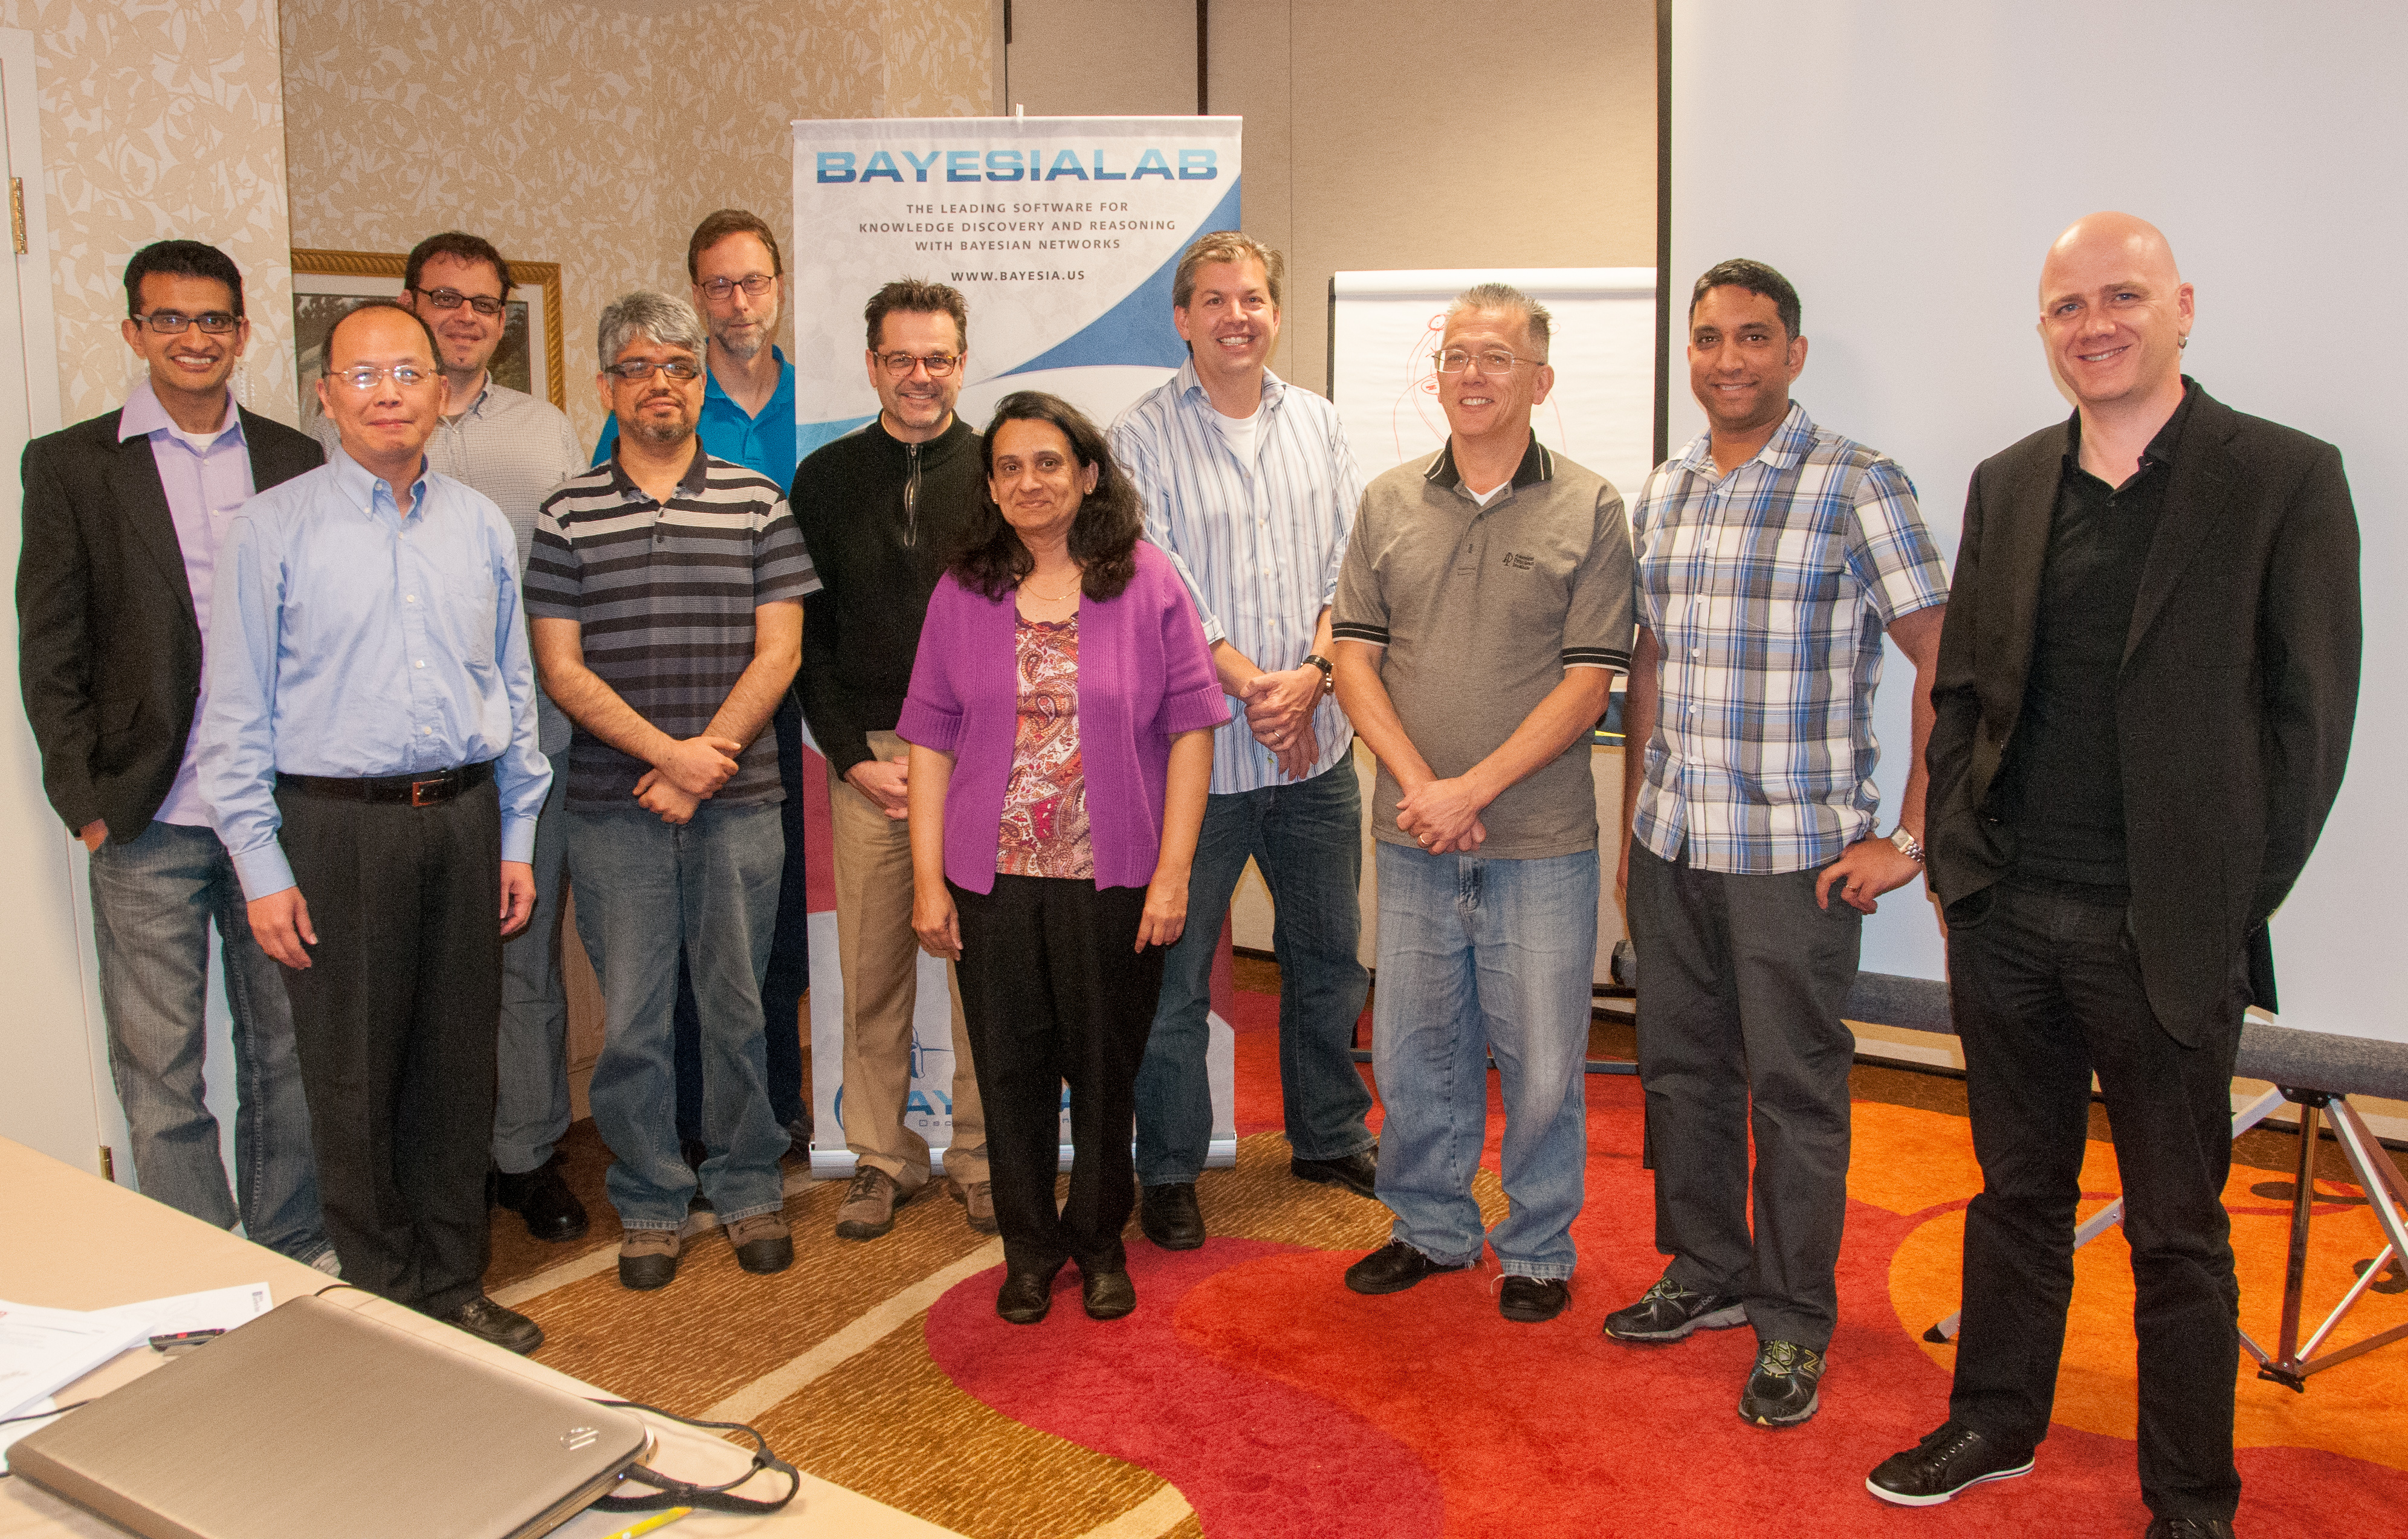 BayesiaLab Course in Orlando, October 2013